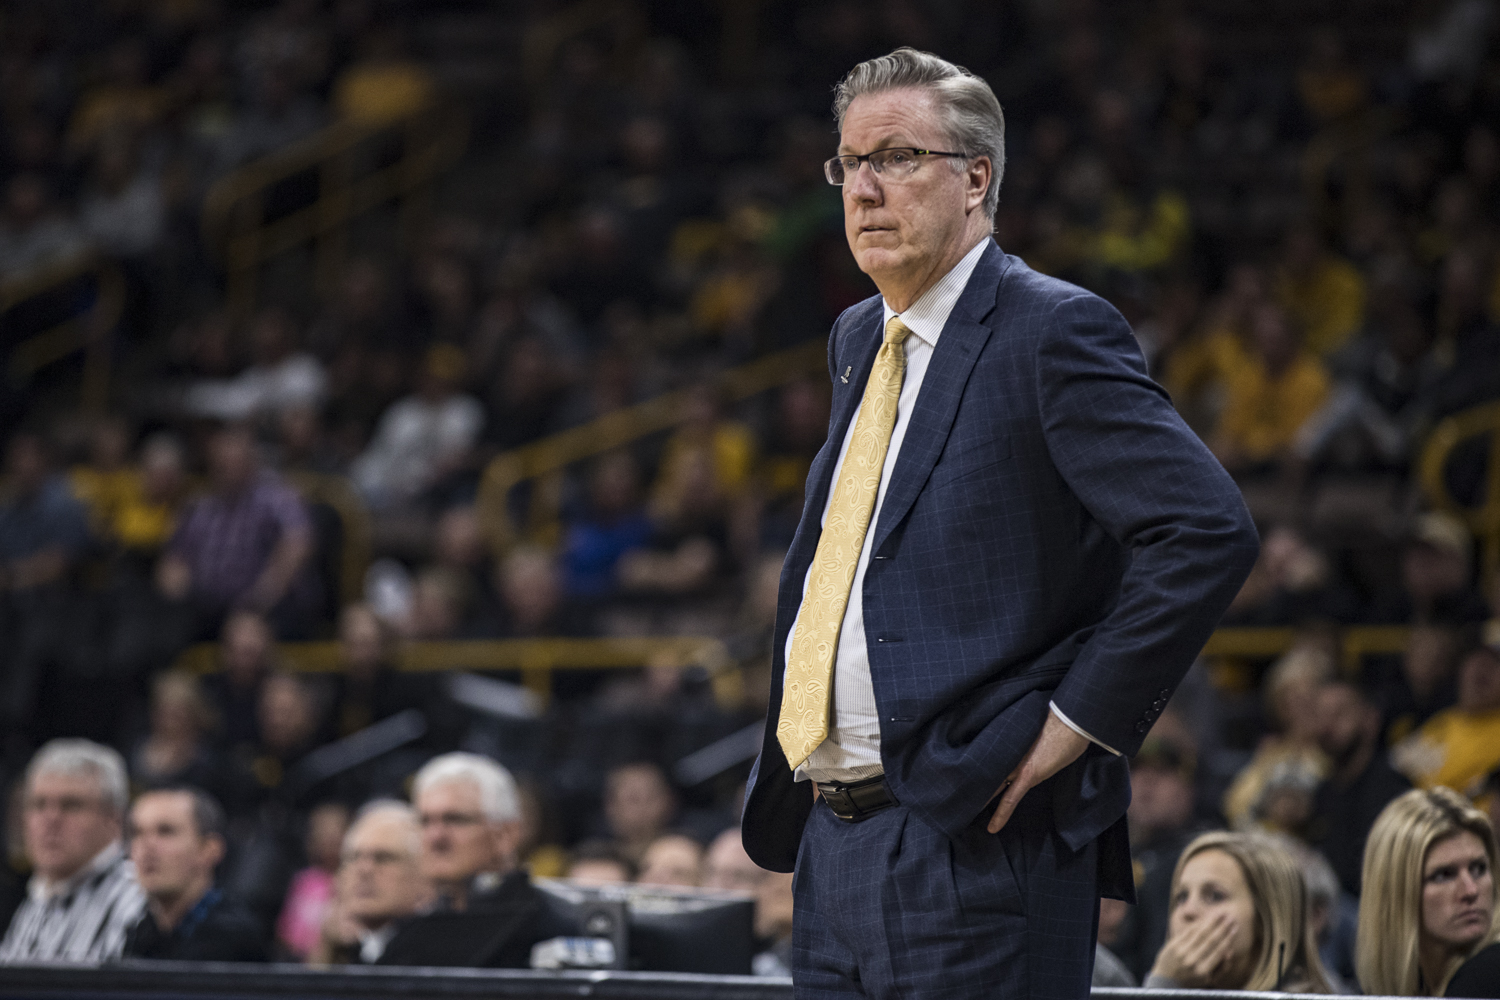 Iowa head coach Fran McCaffery looks on during Iowa's game against Alabama State at Carver-Hawkeye Arena in Iowa City on Wednesday, November 21, 2018. The Hawkeyes defeated the Hornets 105-78